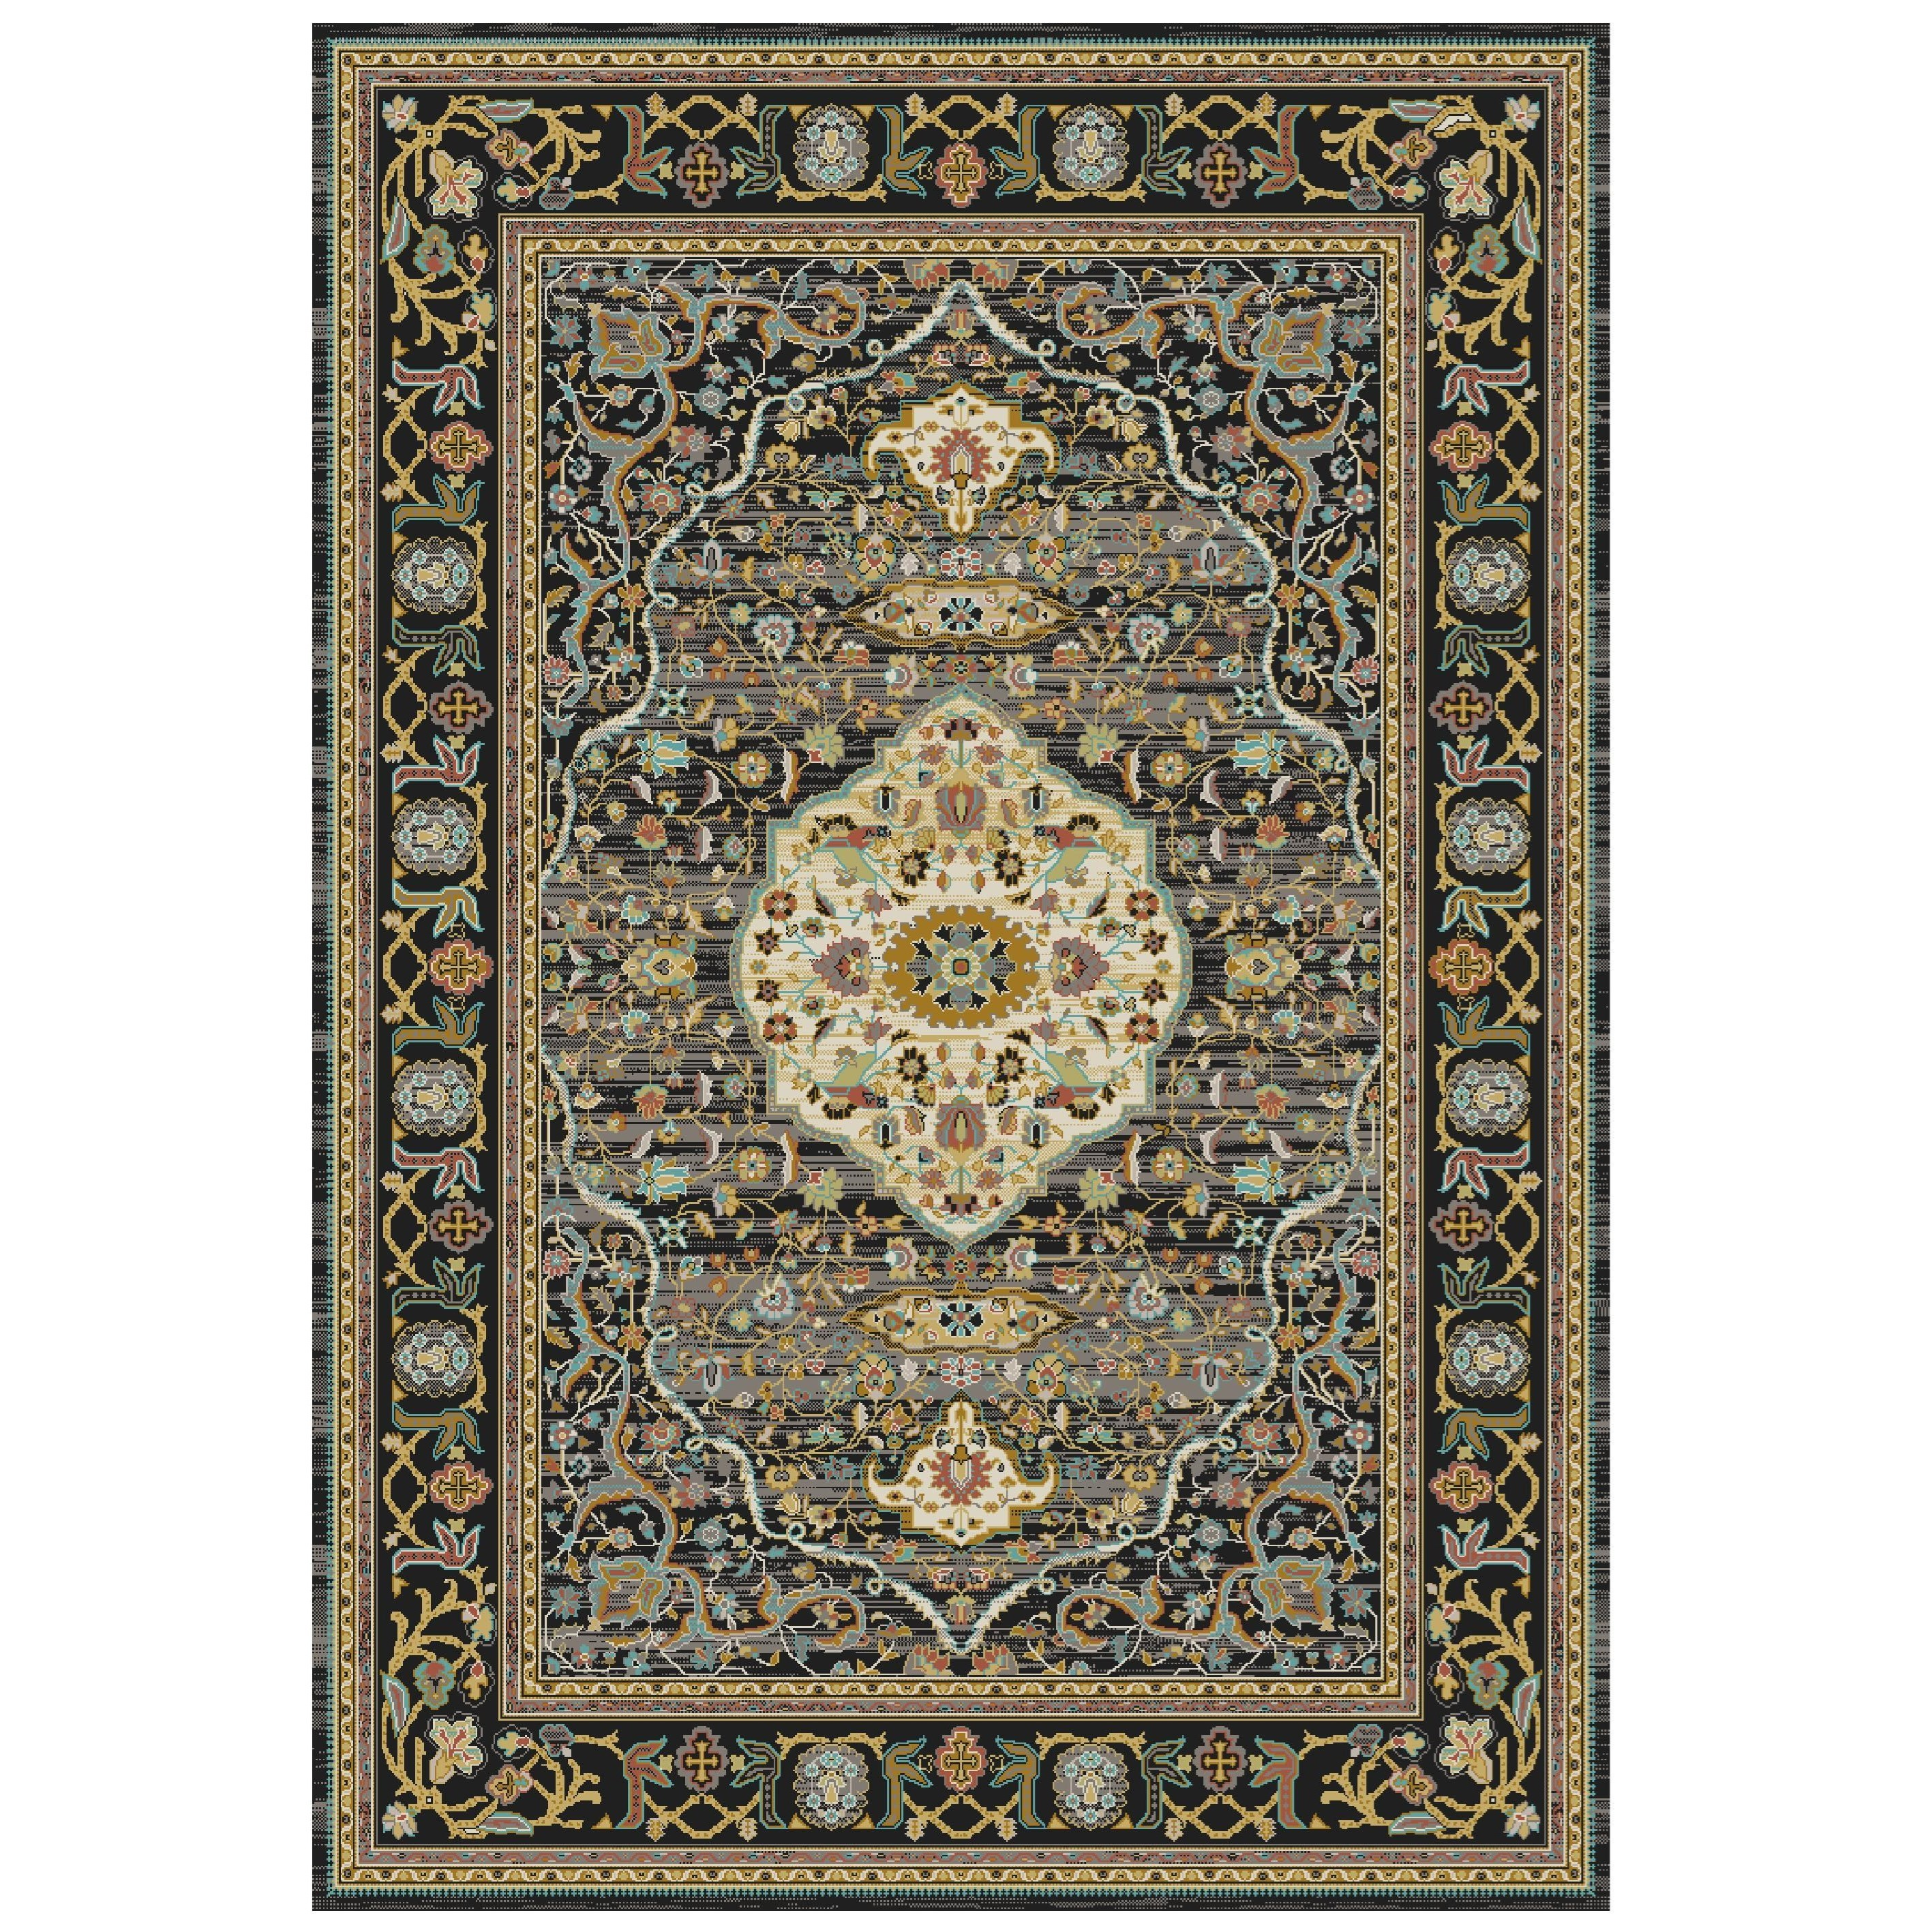 Spice Market 9'6x12'11 Petra Charcoal Rug by Karastan Rugs at Darvin Furniture